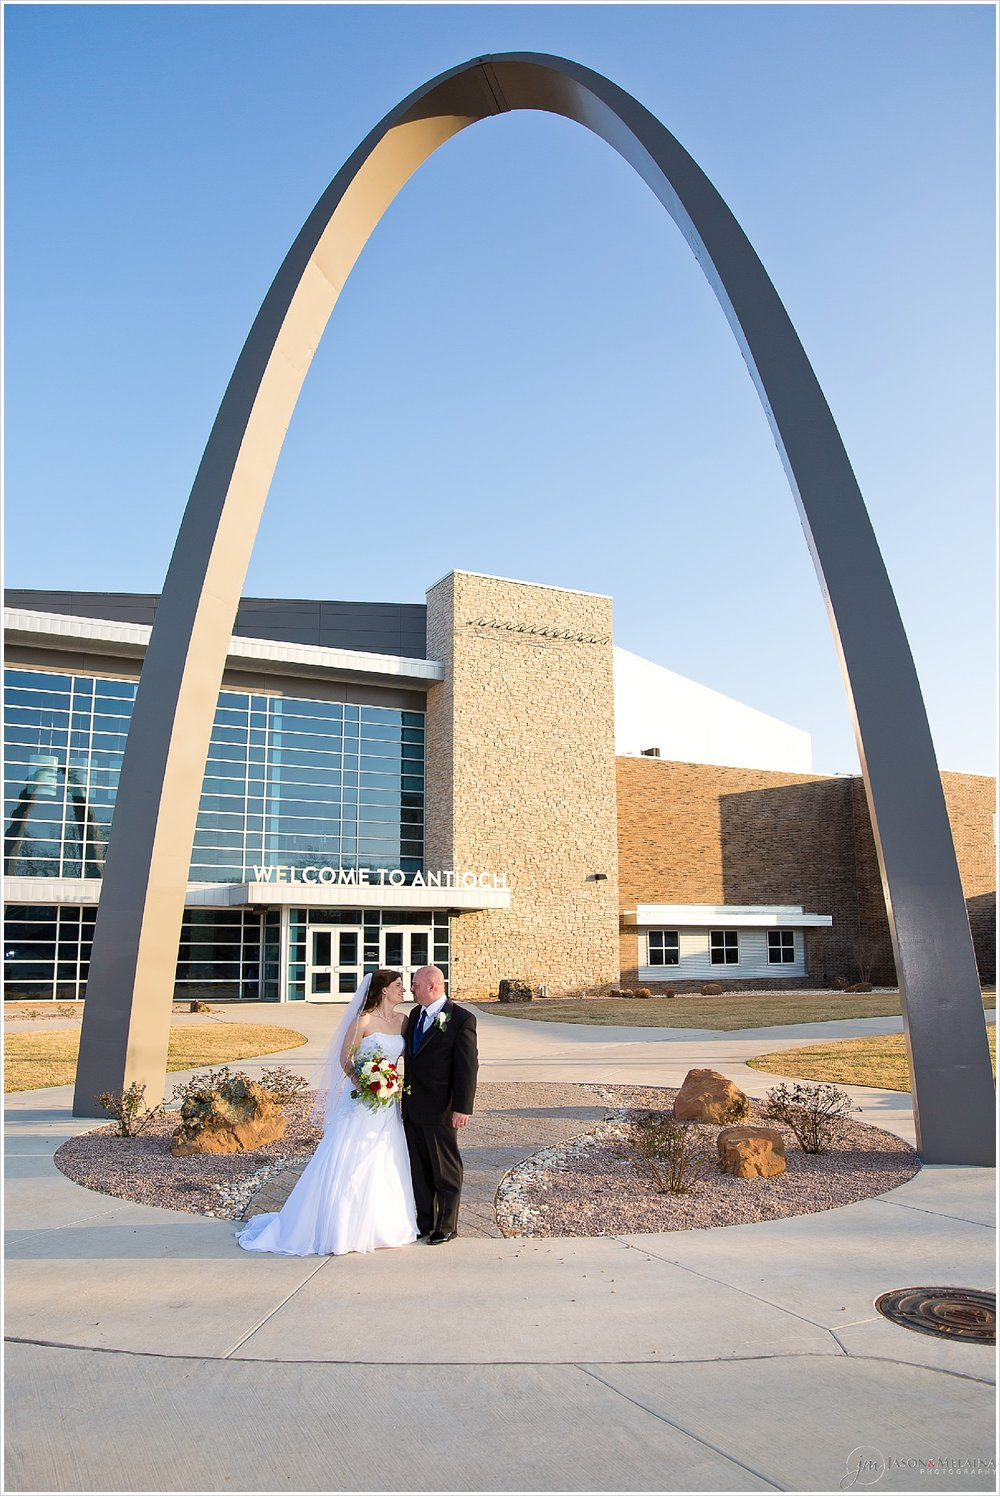 Bride and groom embrace under the arch outside Antioch Community Church in Waco, Texas